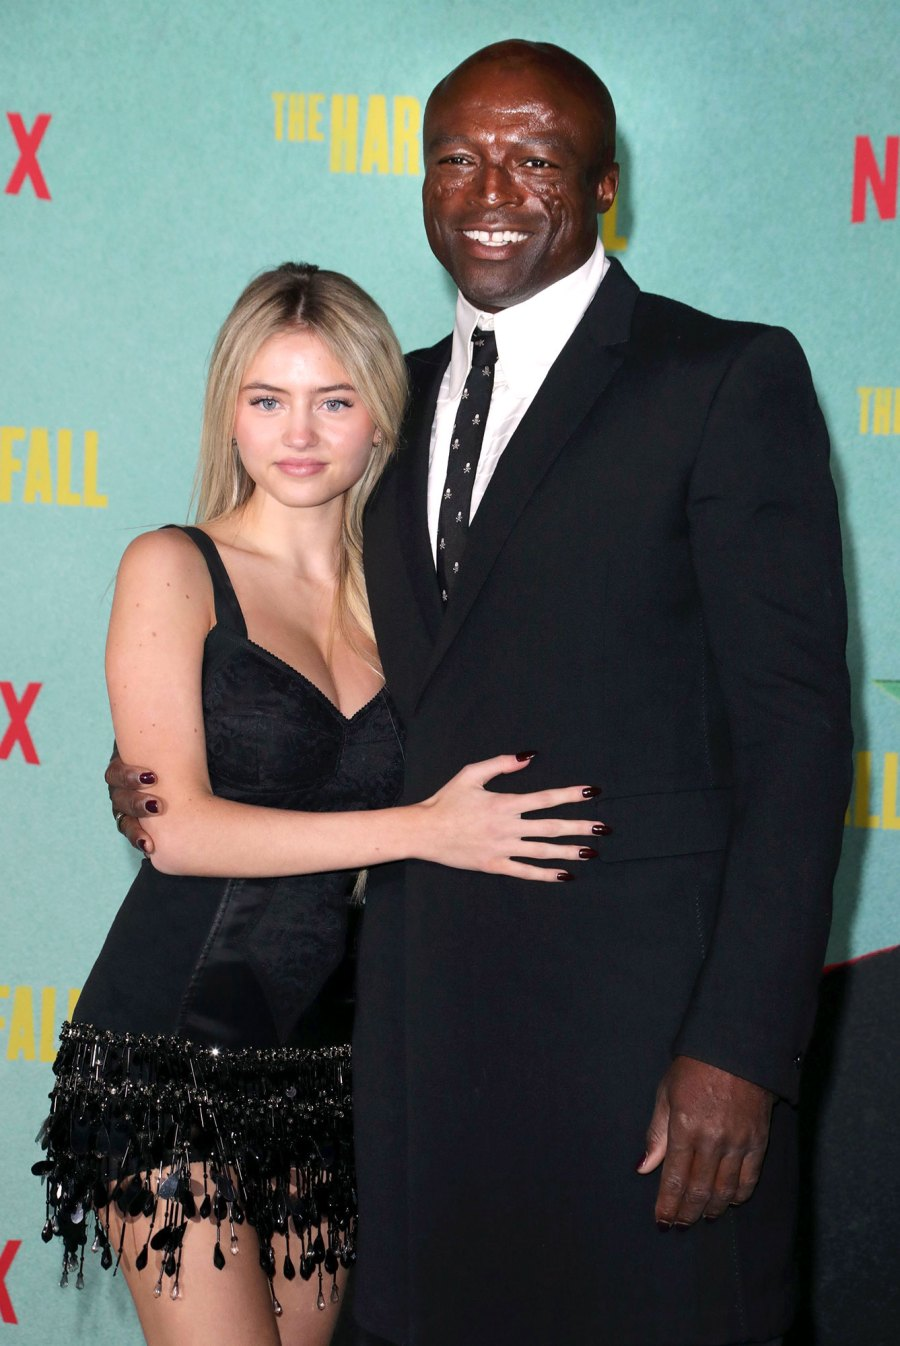 Seal and Daughter Leni Pose at The Harder They Fall Premiere 3